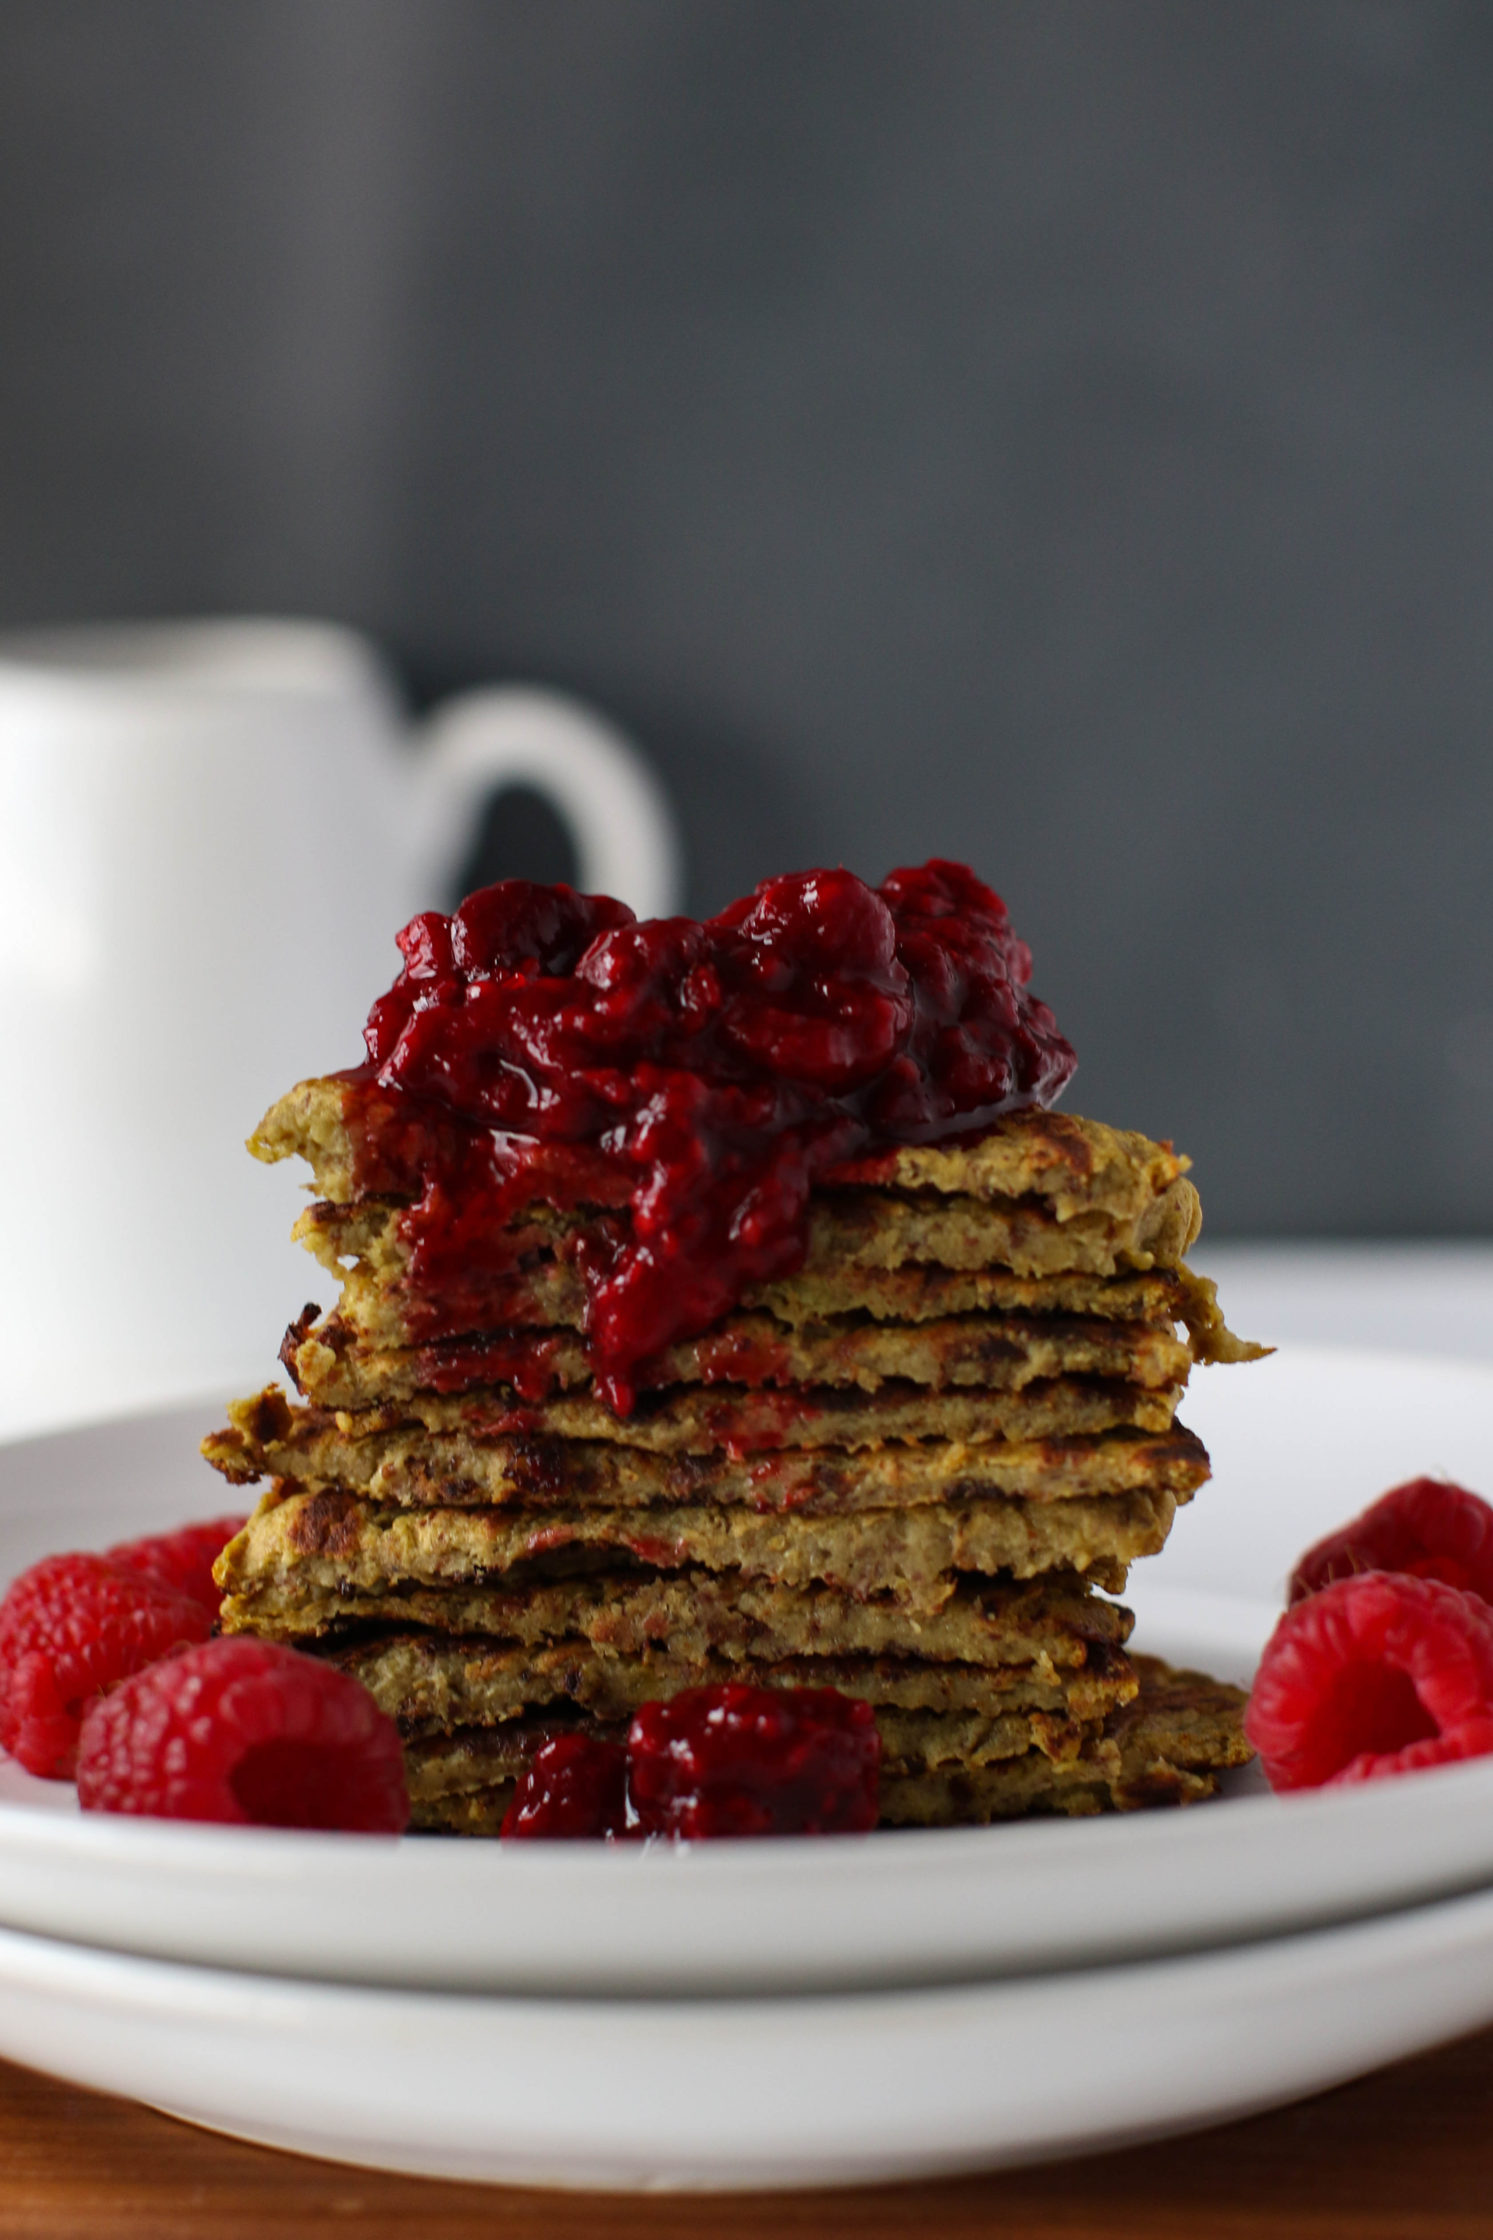 Golden Beet Protein Pancakes with Raspberry Compote